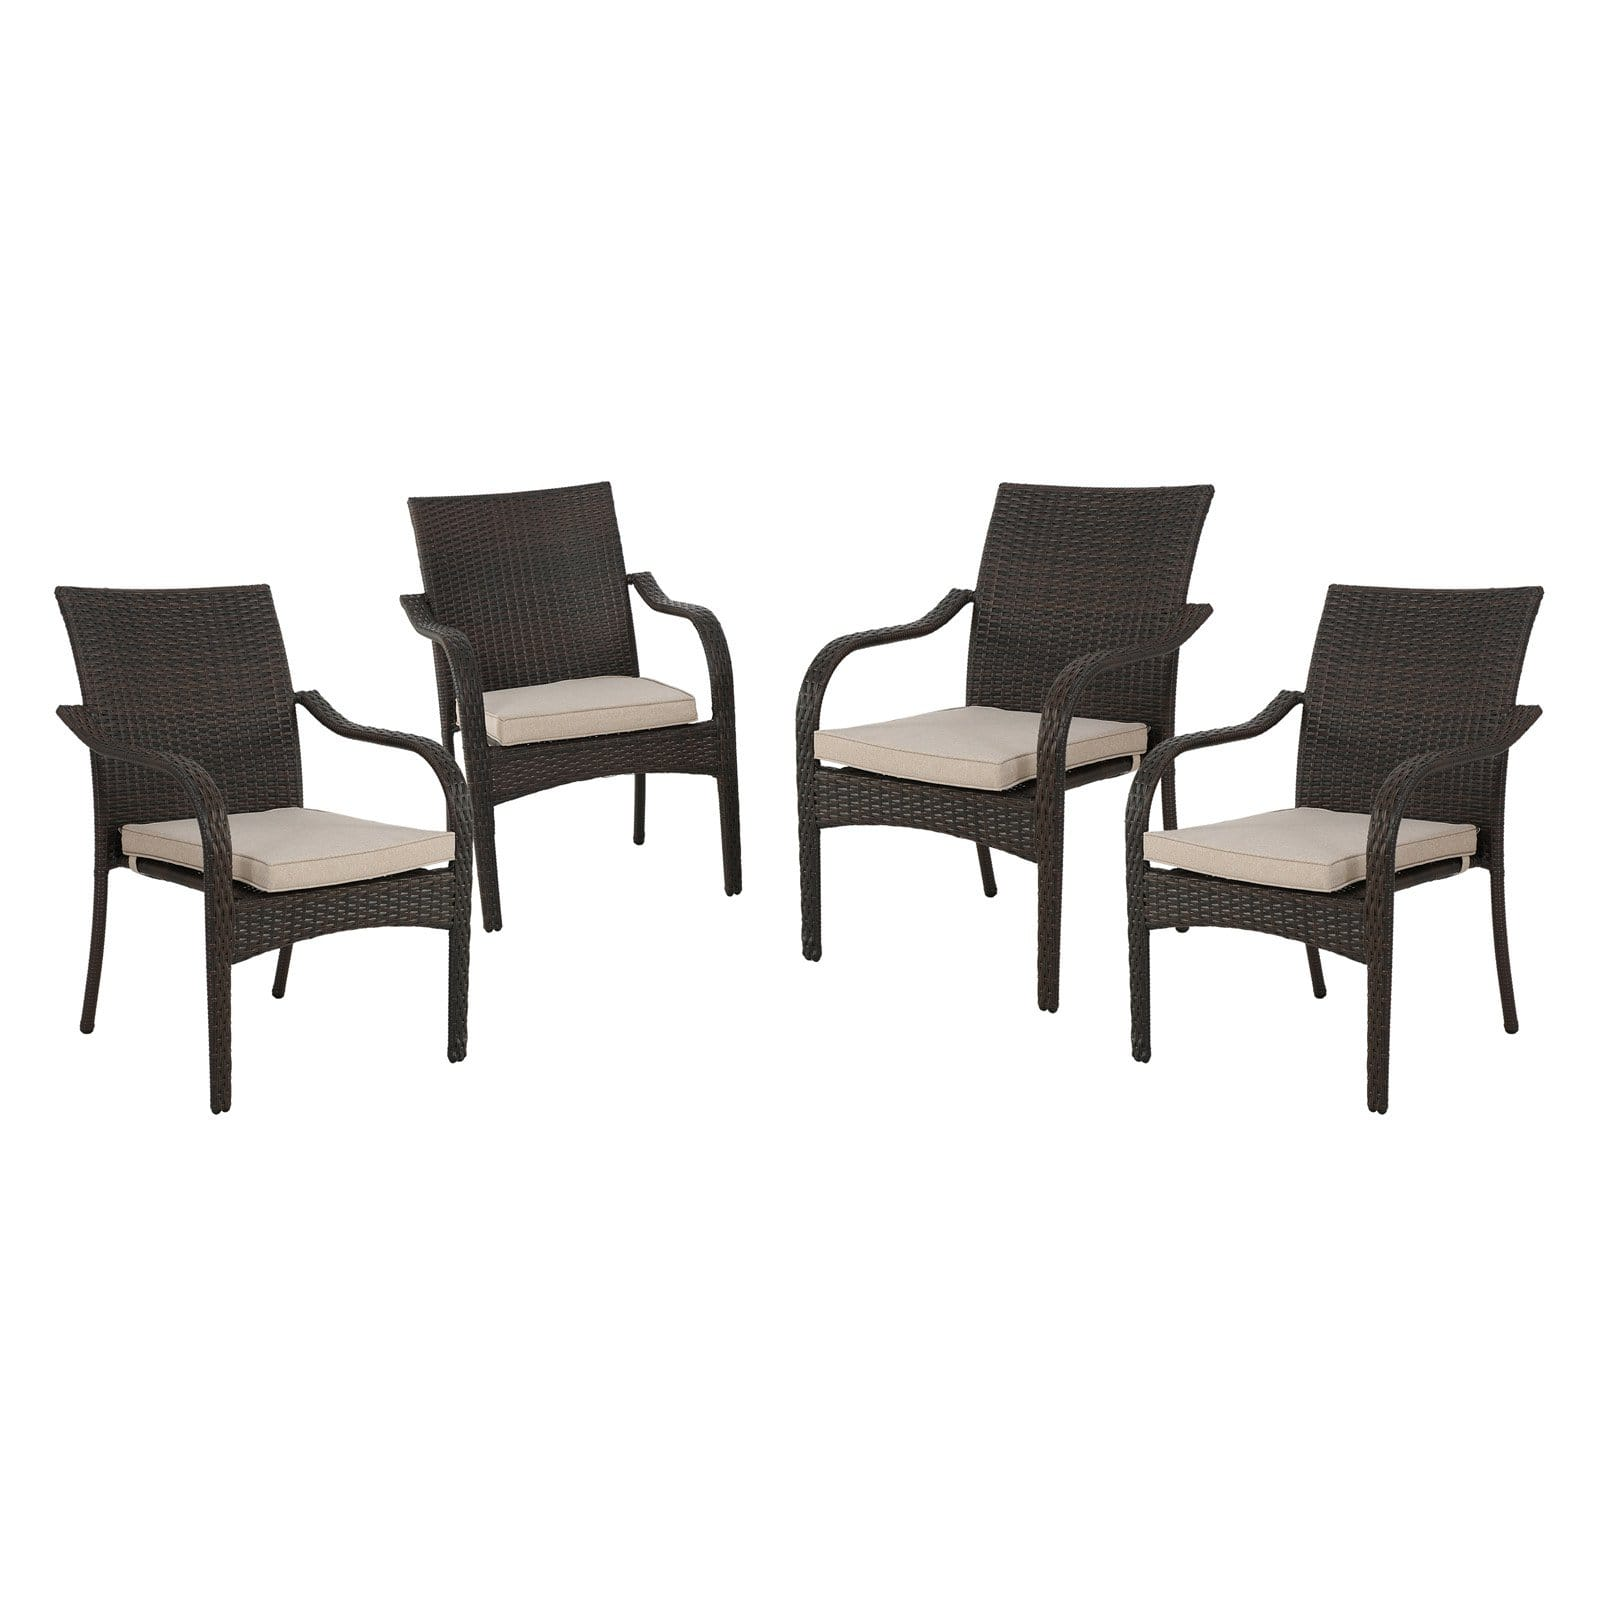 solomon wicker stacking chairs set of 4